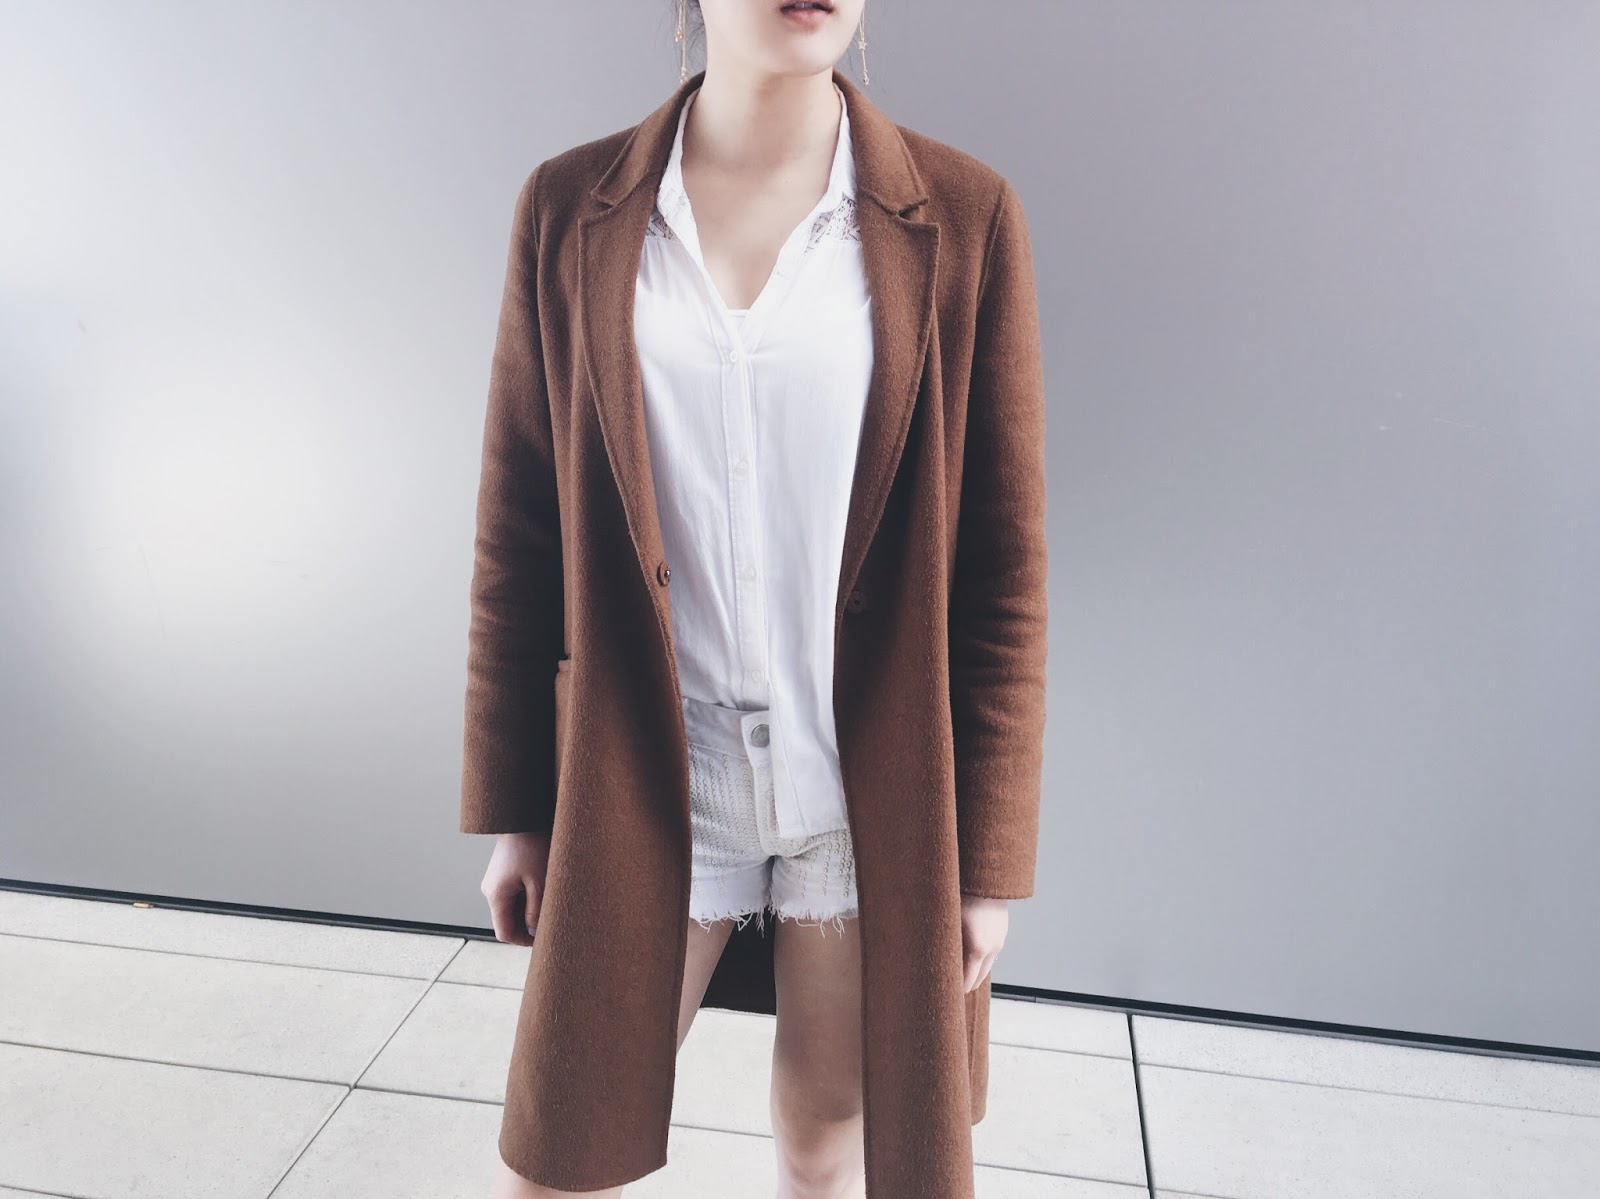 THE CAMEL COAT | aesteblanc.blogspot.com